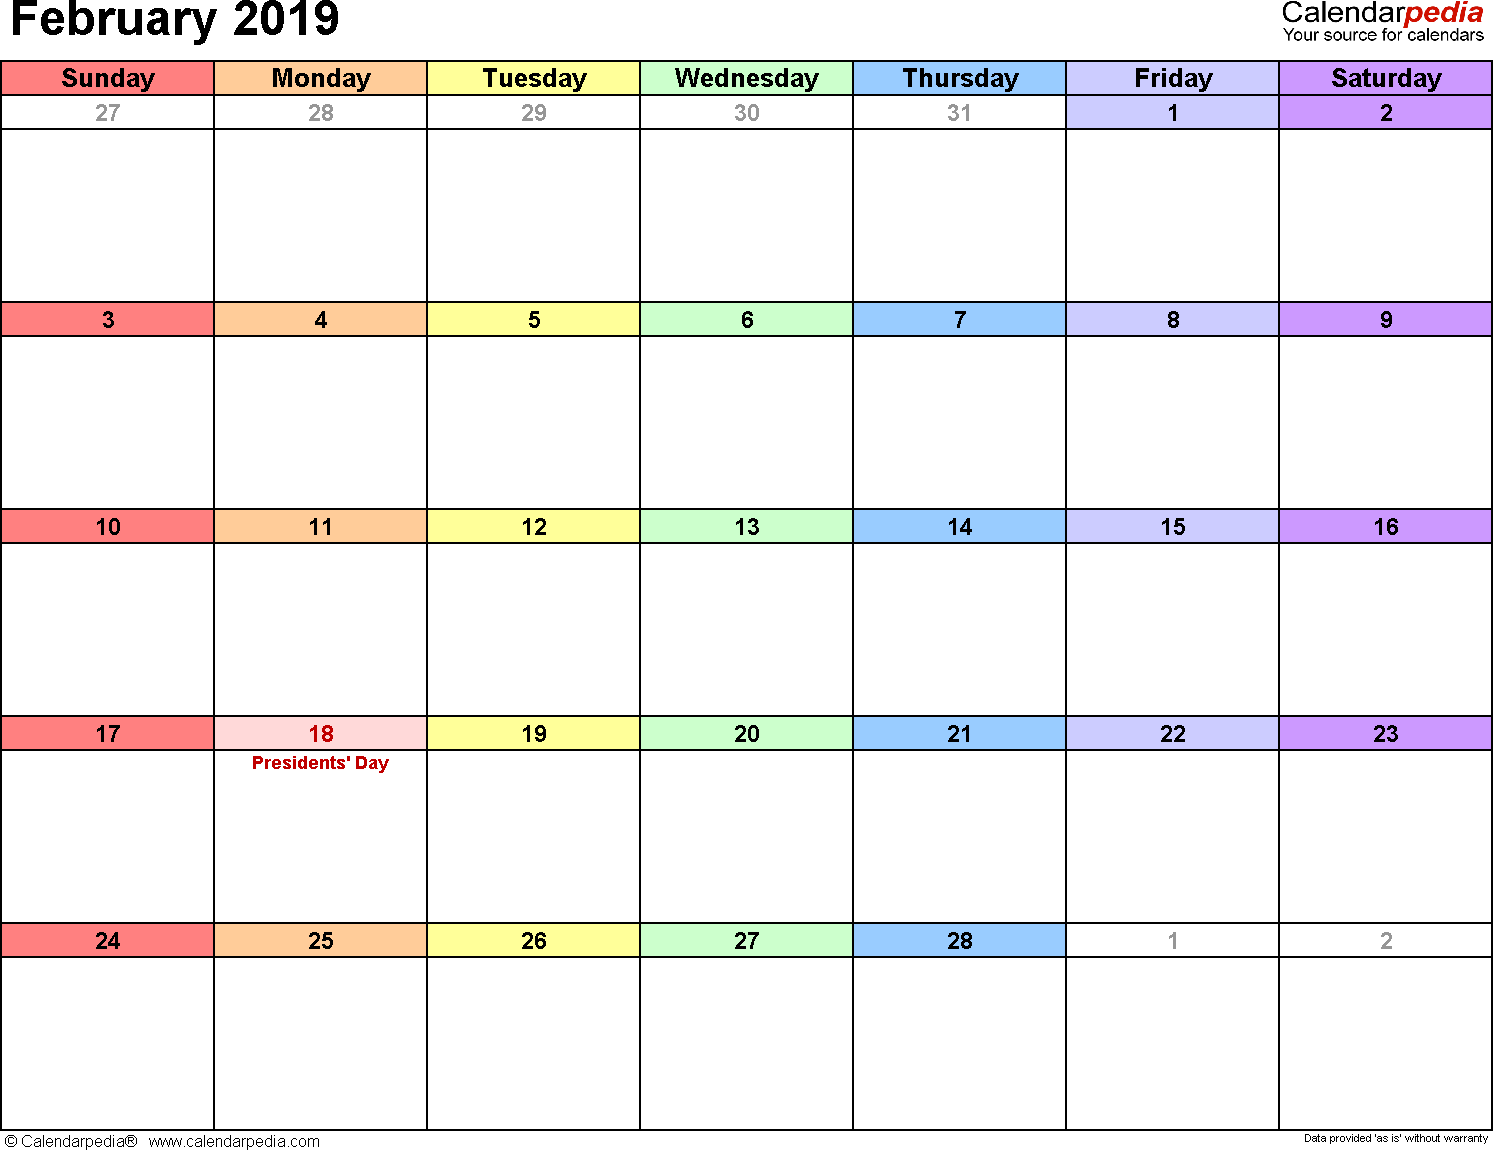 February Calendar 2019.February 2019 Calendars For Word Excel Pdf